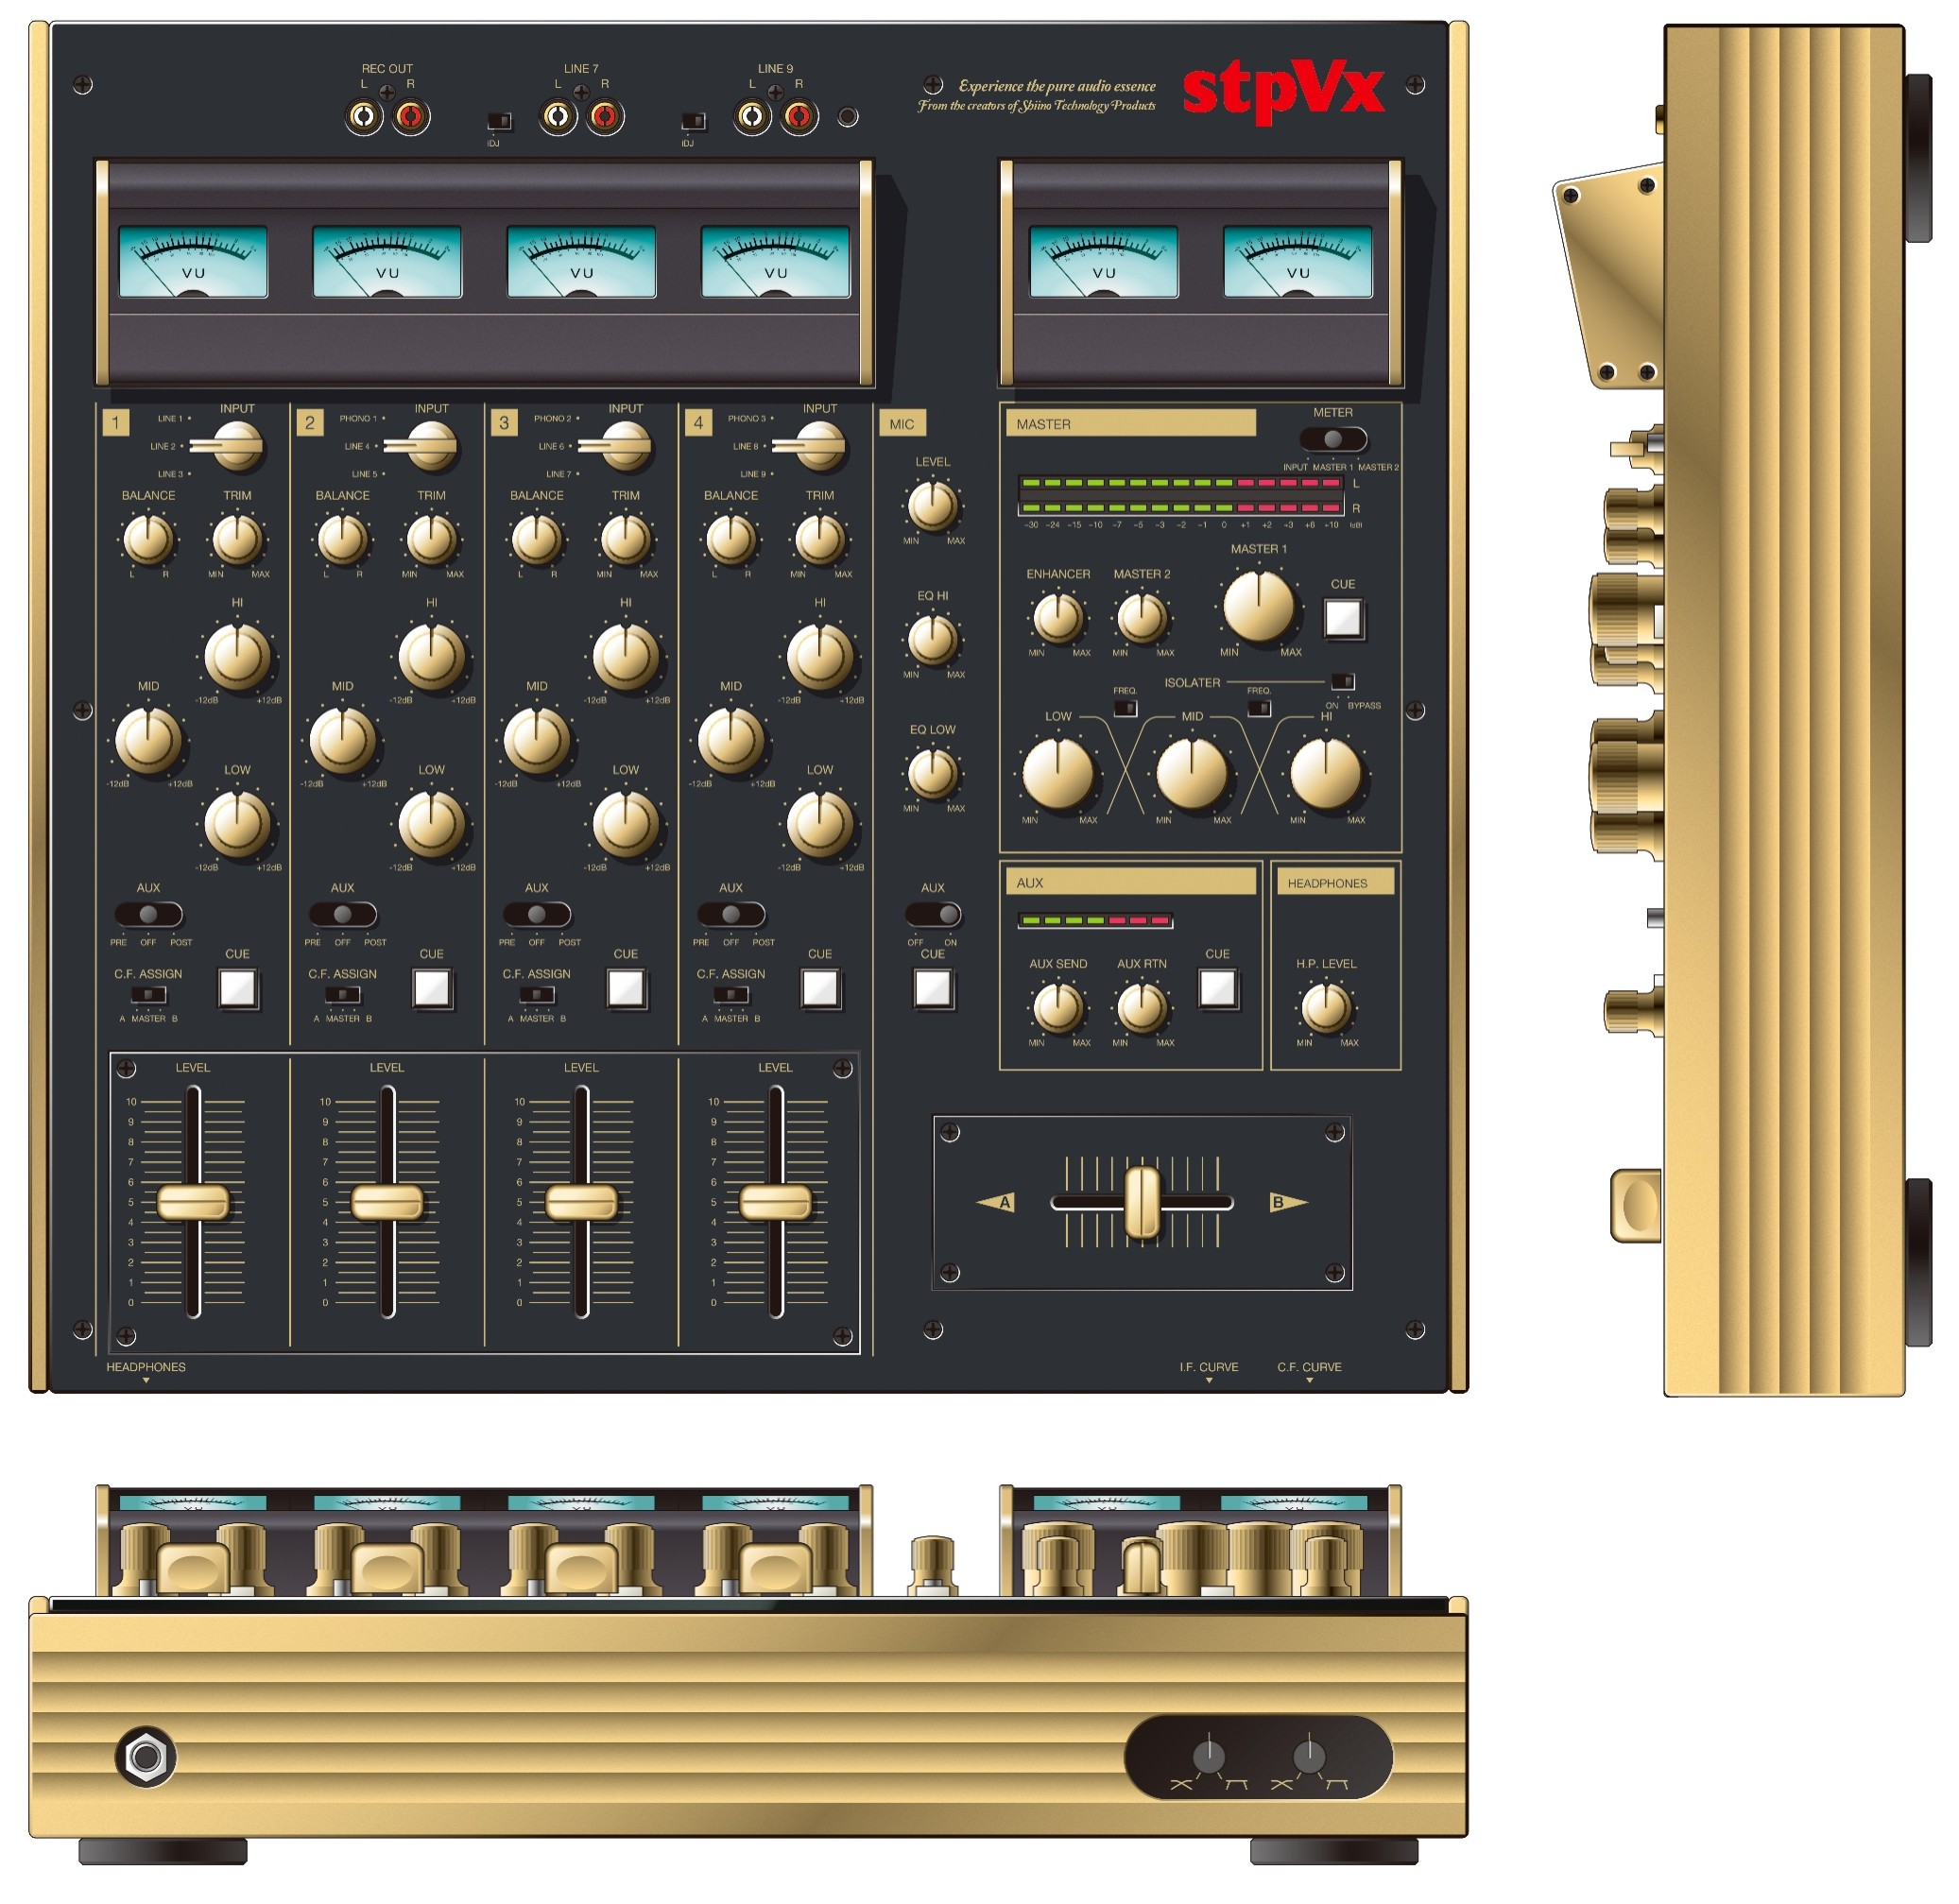 stpvx_mixer_20160208_for_web